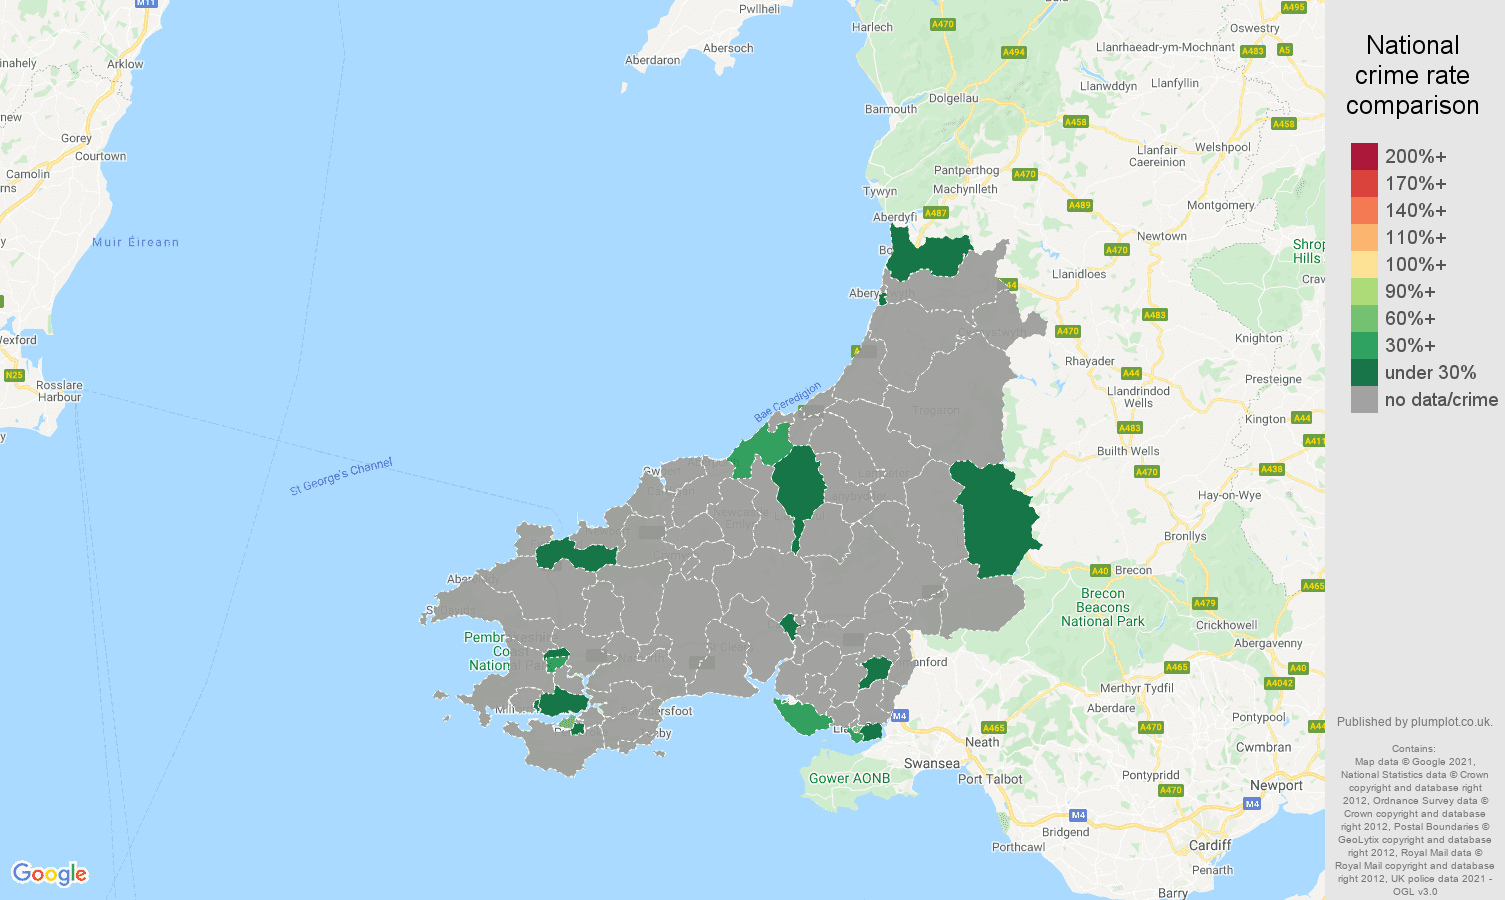 Dyfed robbery crime rate comparison map